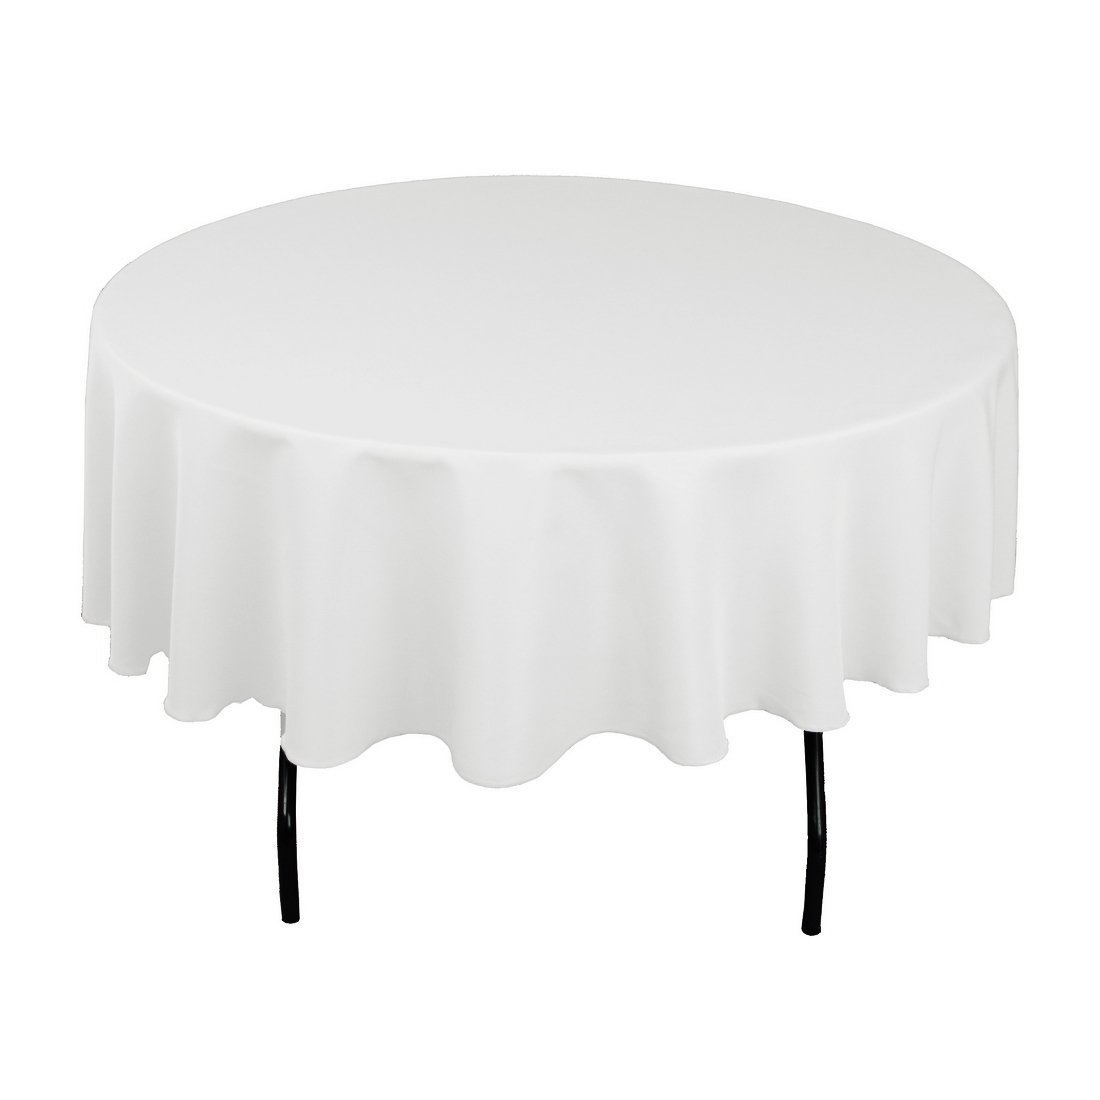 Craft and Party - 10 pcs Round Tablecloth for Home, Party, Wedding or Restaurant Use. (90'' Round White)